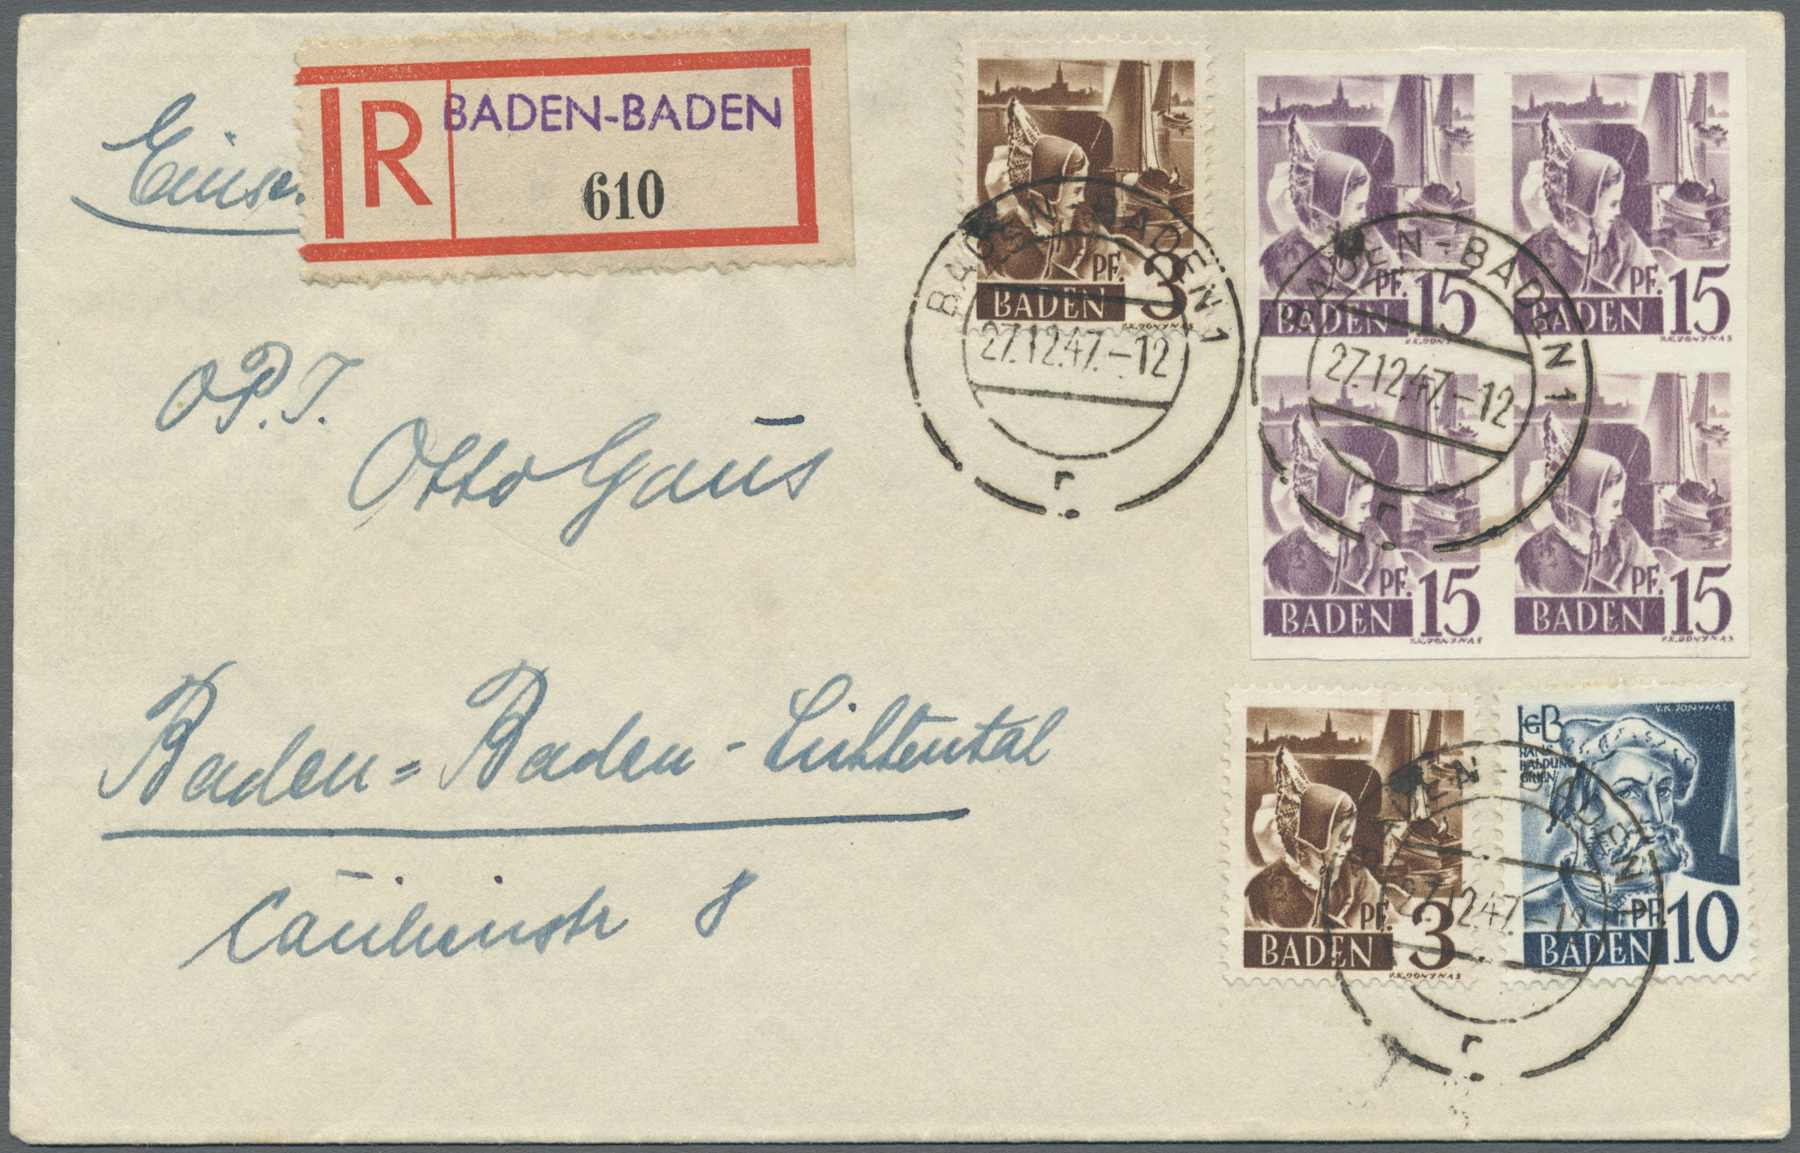 Lot 24922 - französische zone - baden  -  Auktionshaus Christoph Gärtner GmbH & Co. KG Single lots Germany + Picture Postcards. Auction #39 Day 5